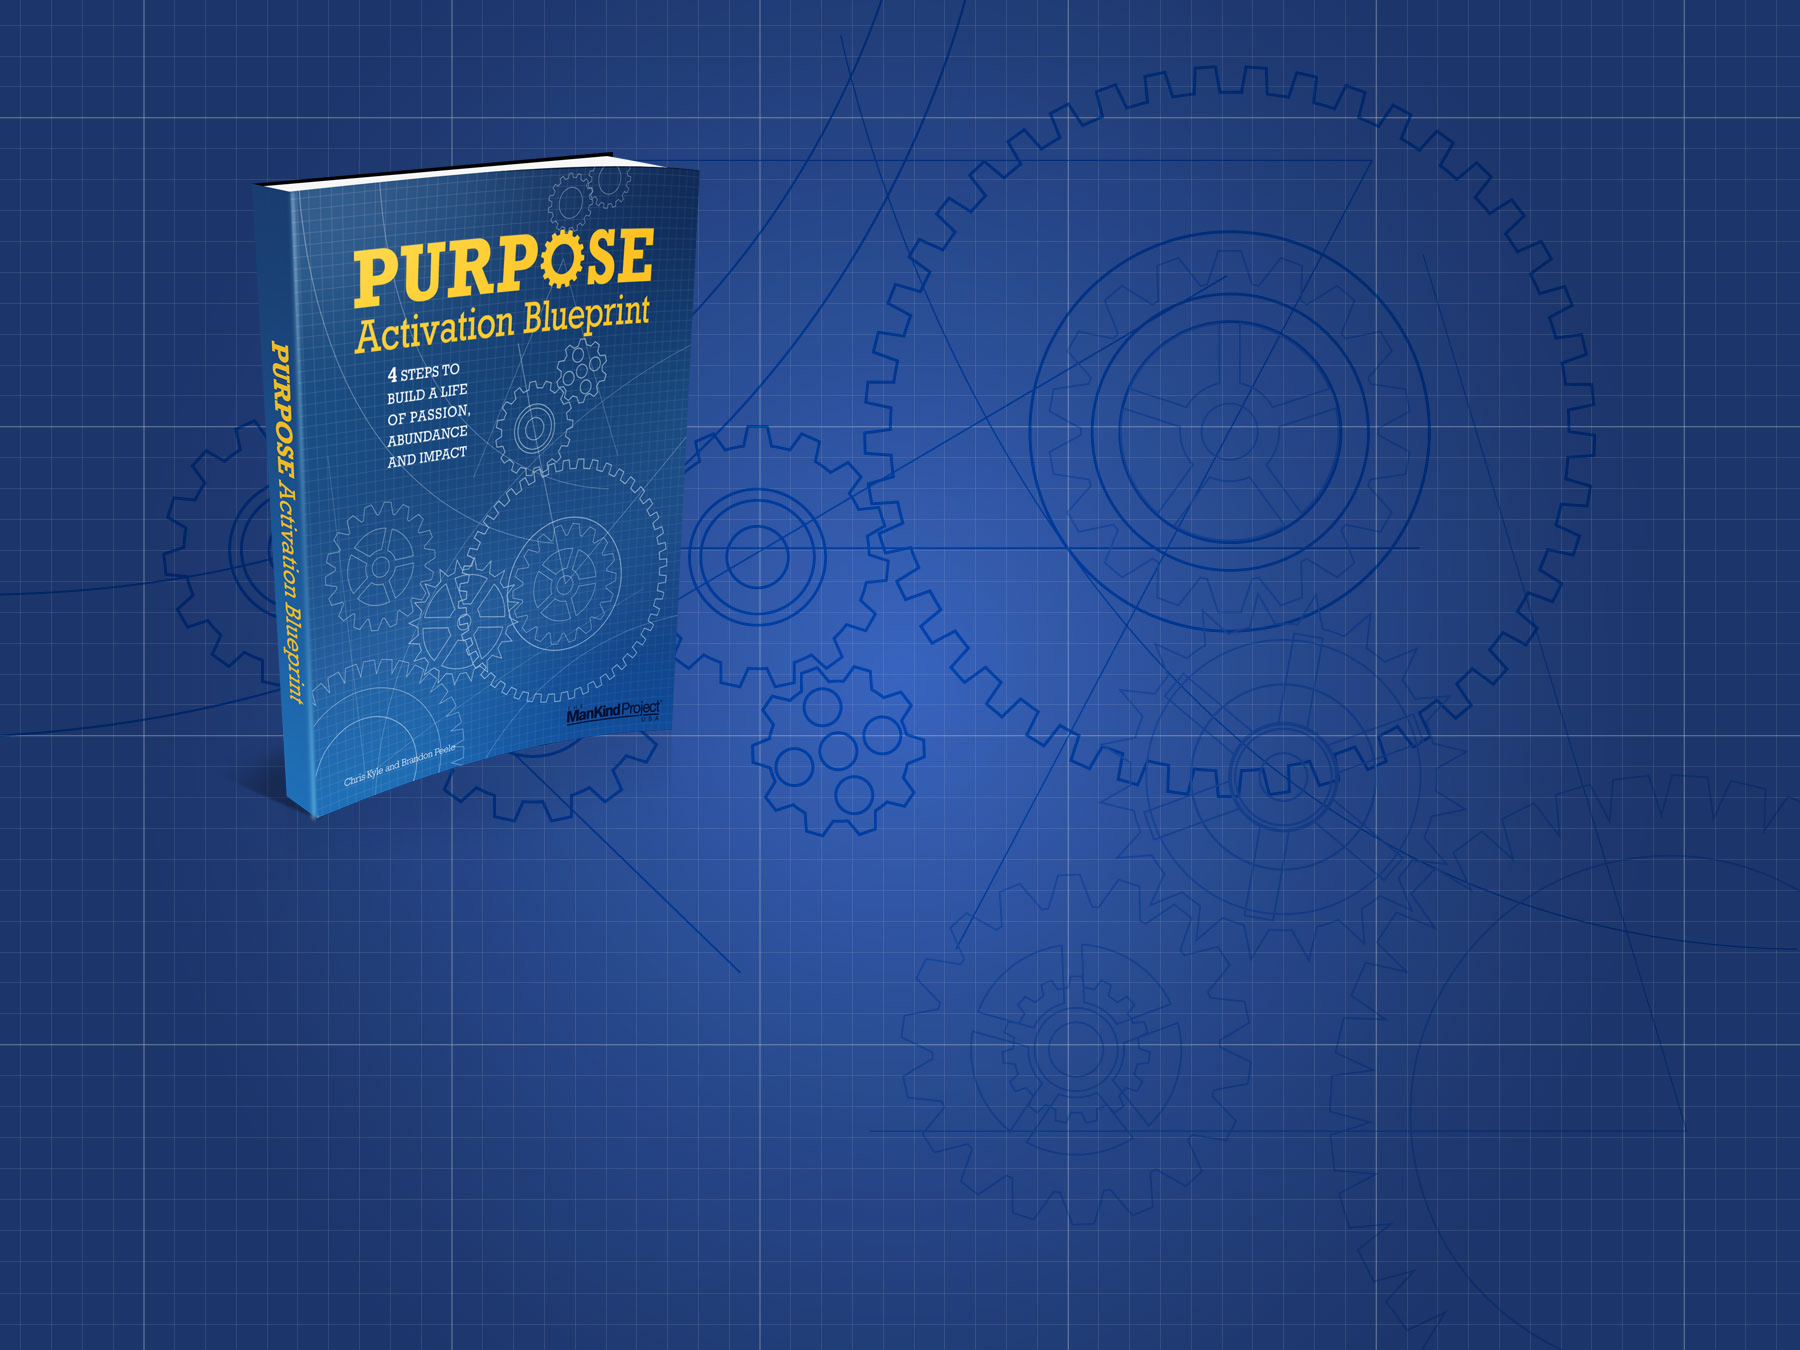 Purpose activation blueprint the purpose activation blueprint 4 essential steps to creating the life you want malvernweather Images